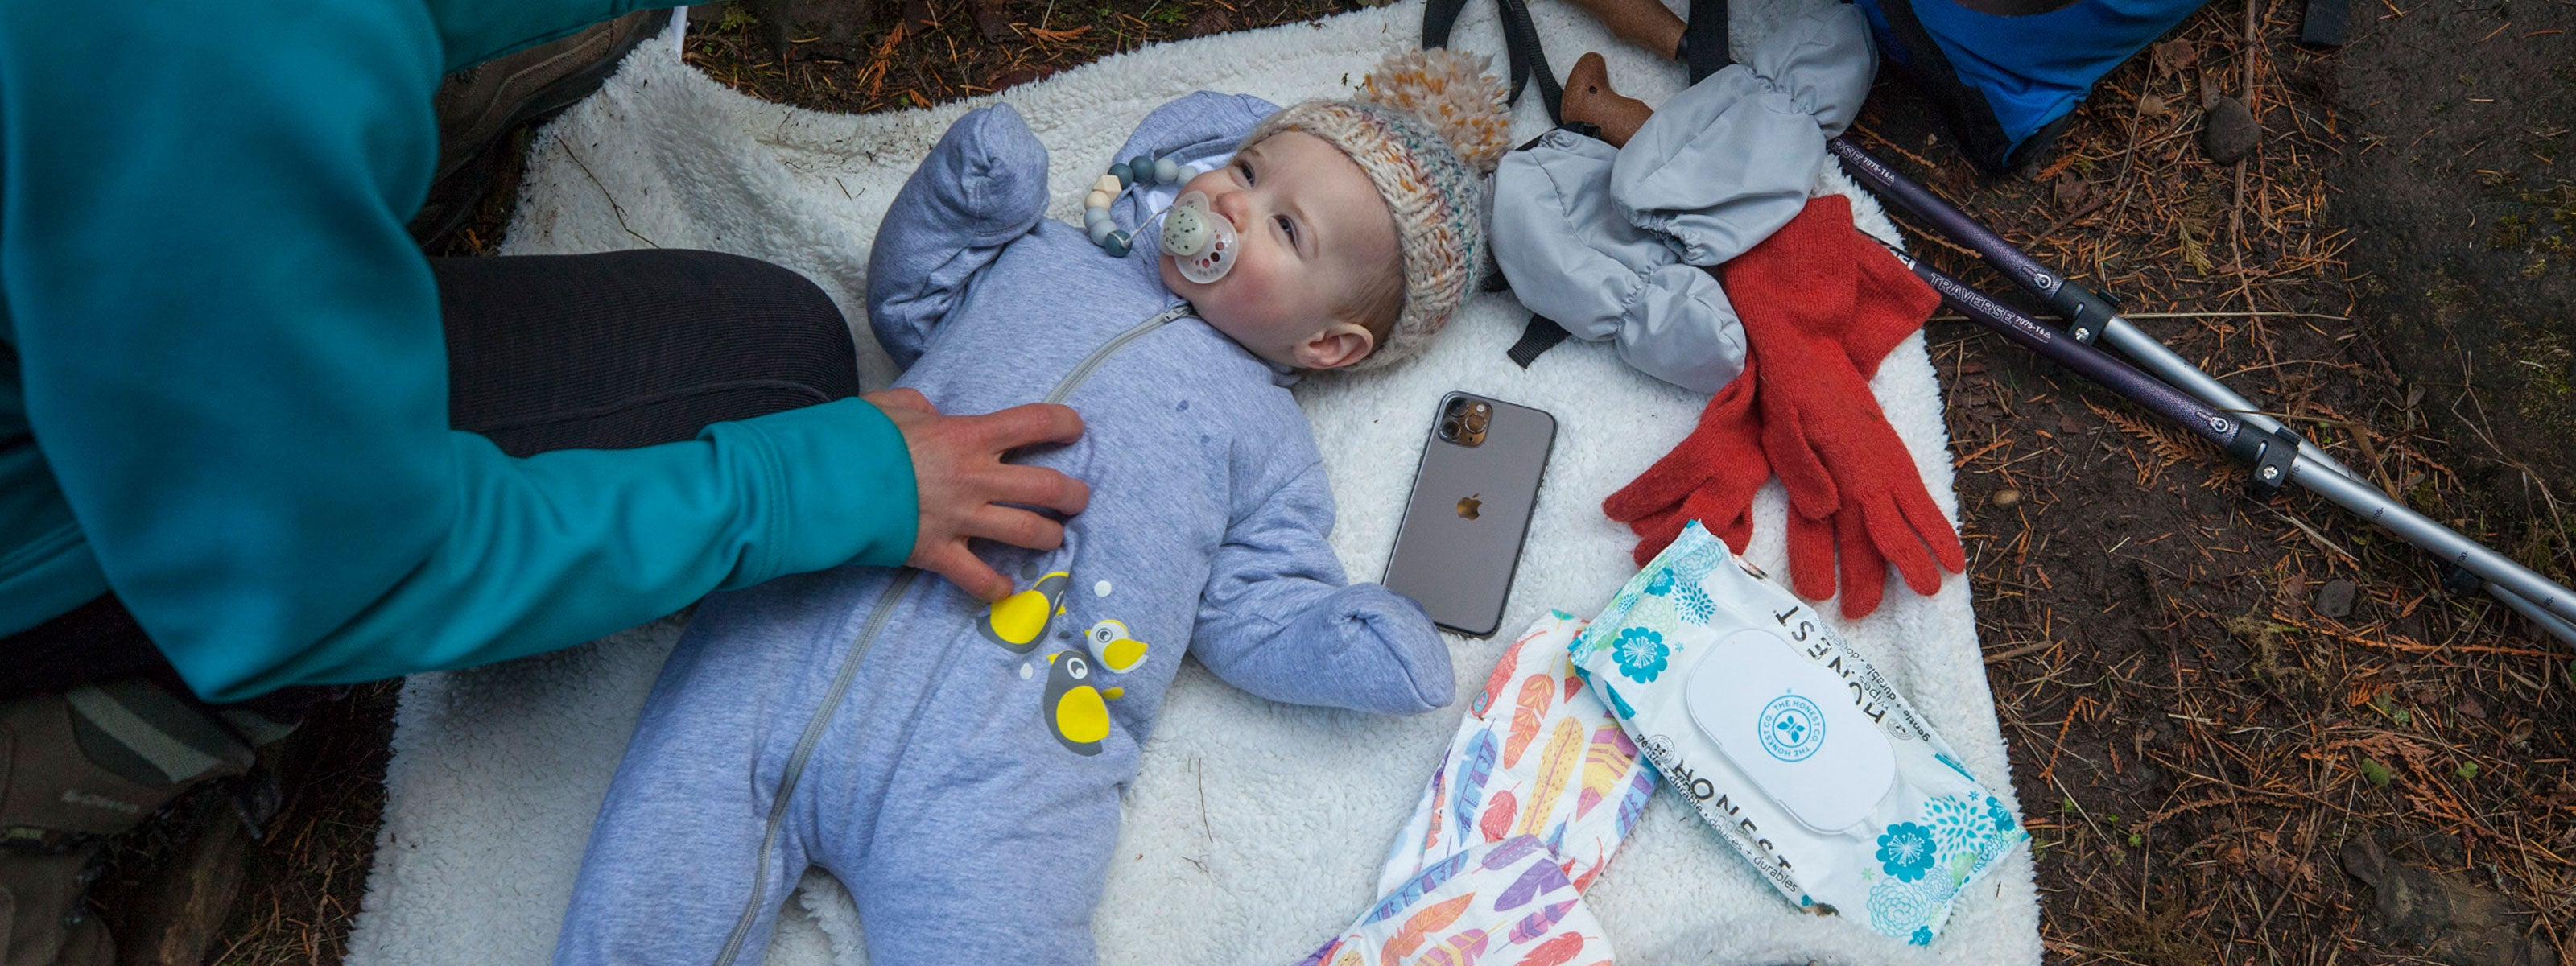 baby lying with iphone